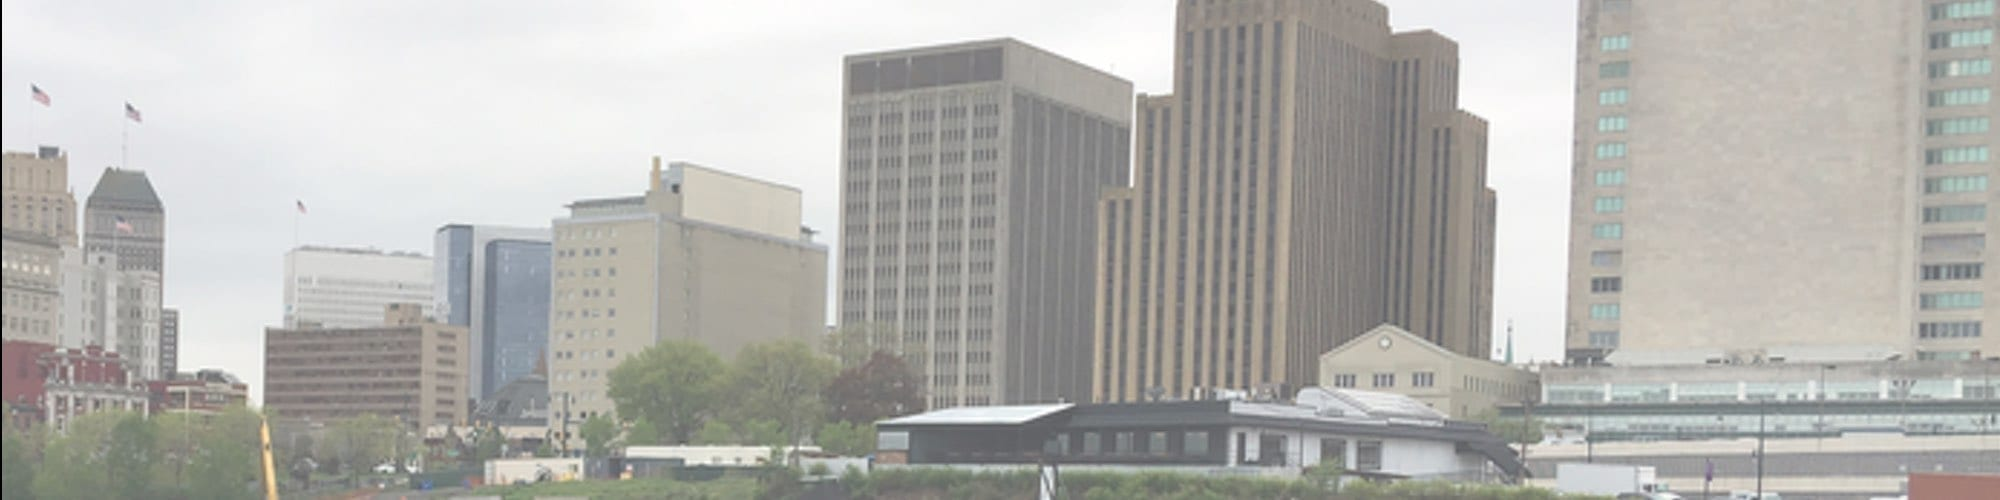 New Jersey Indoor Air Quality Testing (IAQ) Surveys in High-Rise Commercial/Residential Buildings